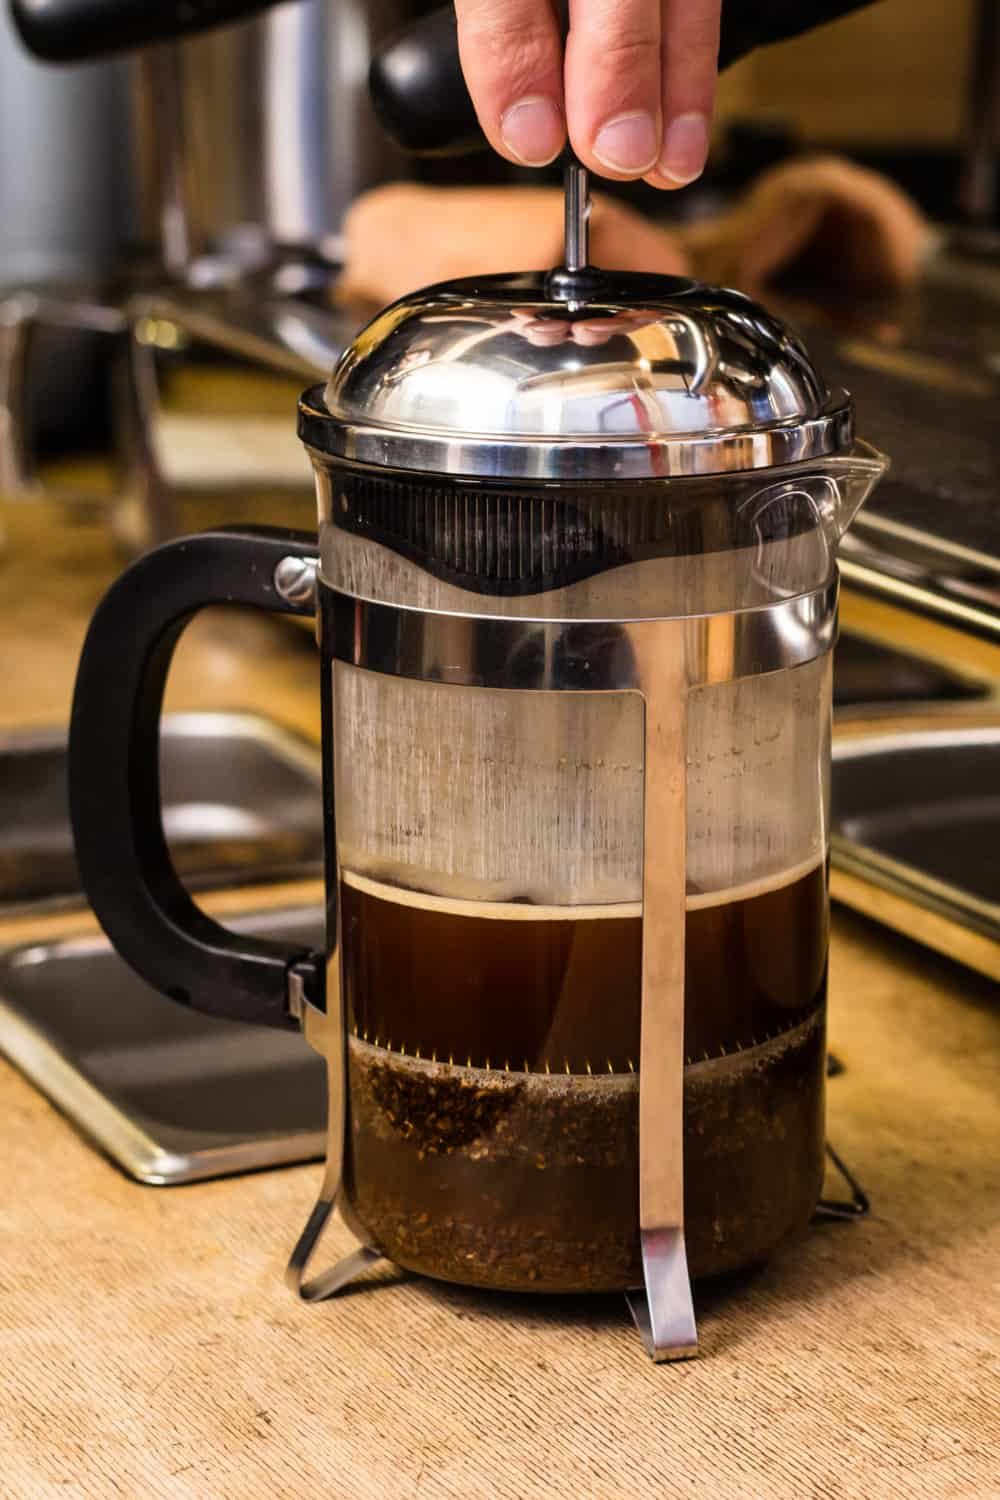 Advantages of French press